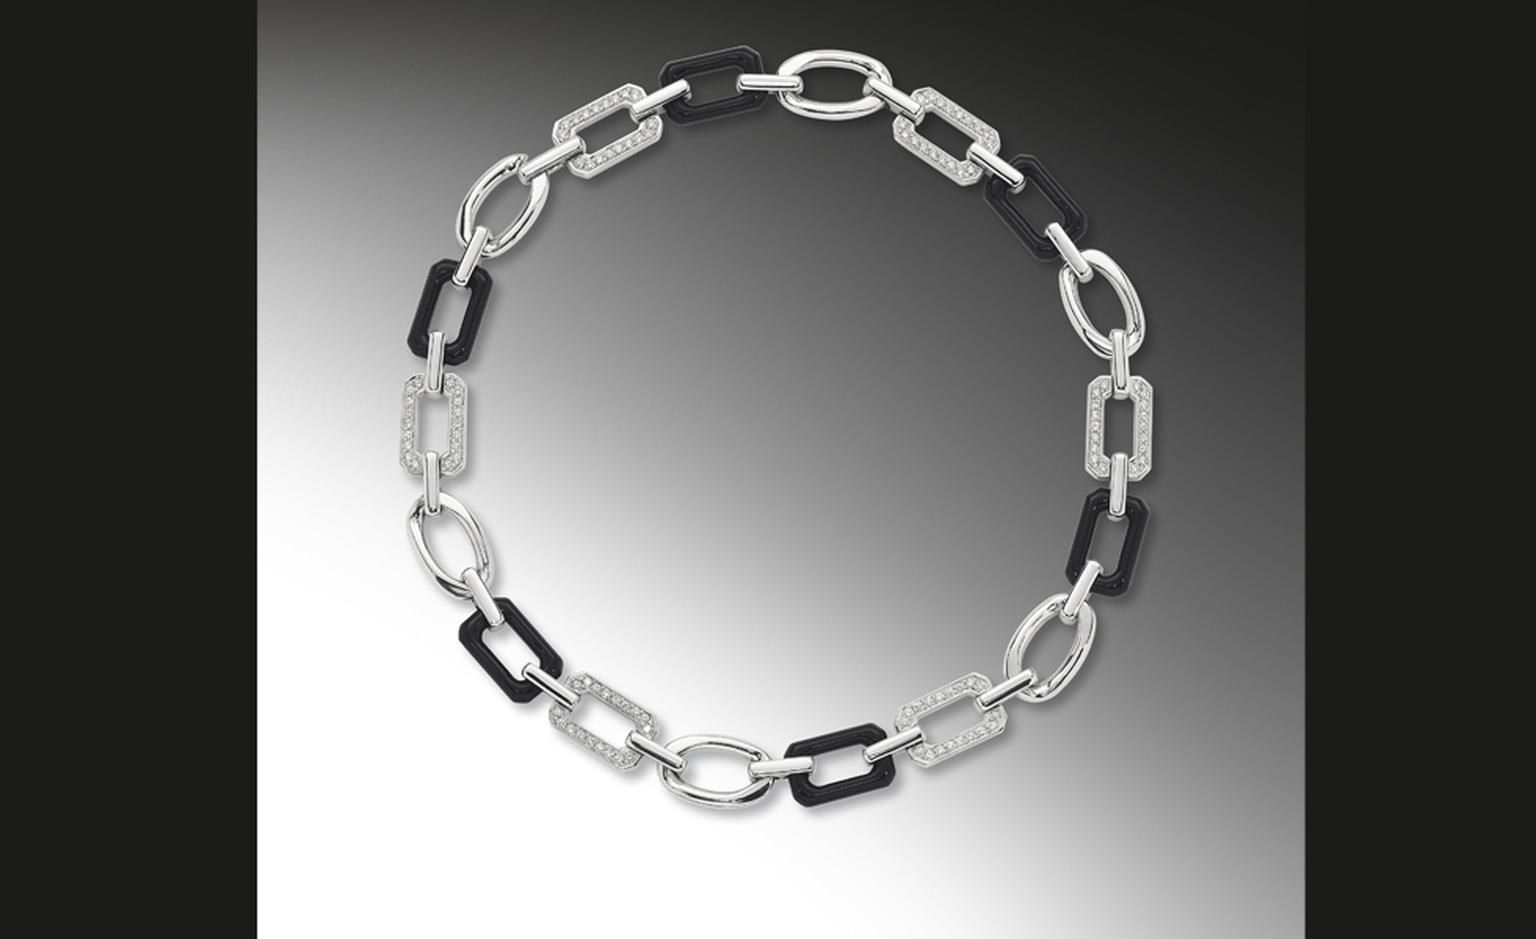 CHANEL, The Premiere in 18kt white gold and onyx premiere necklace. £17,350